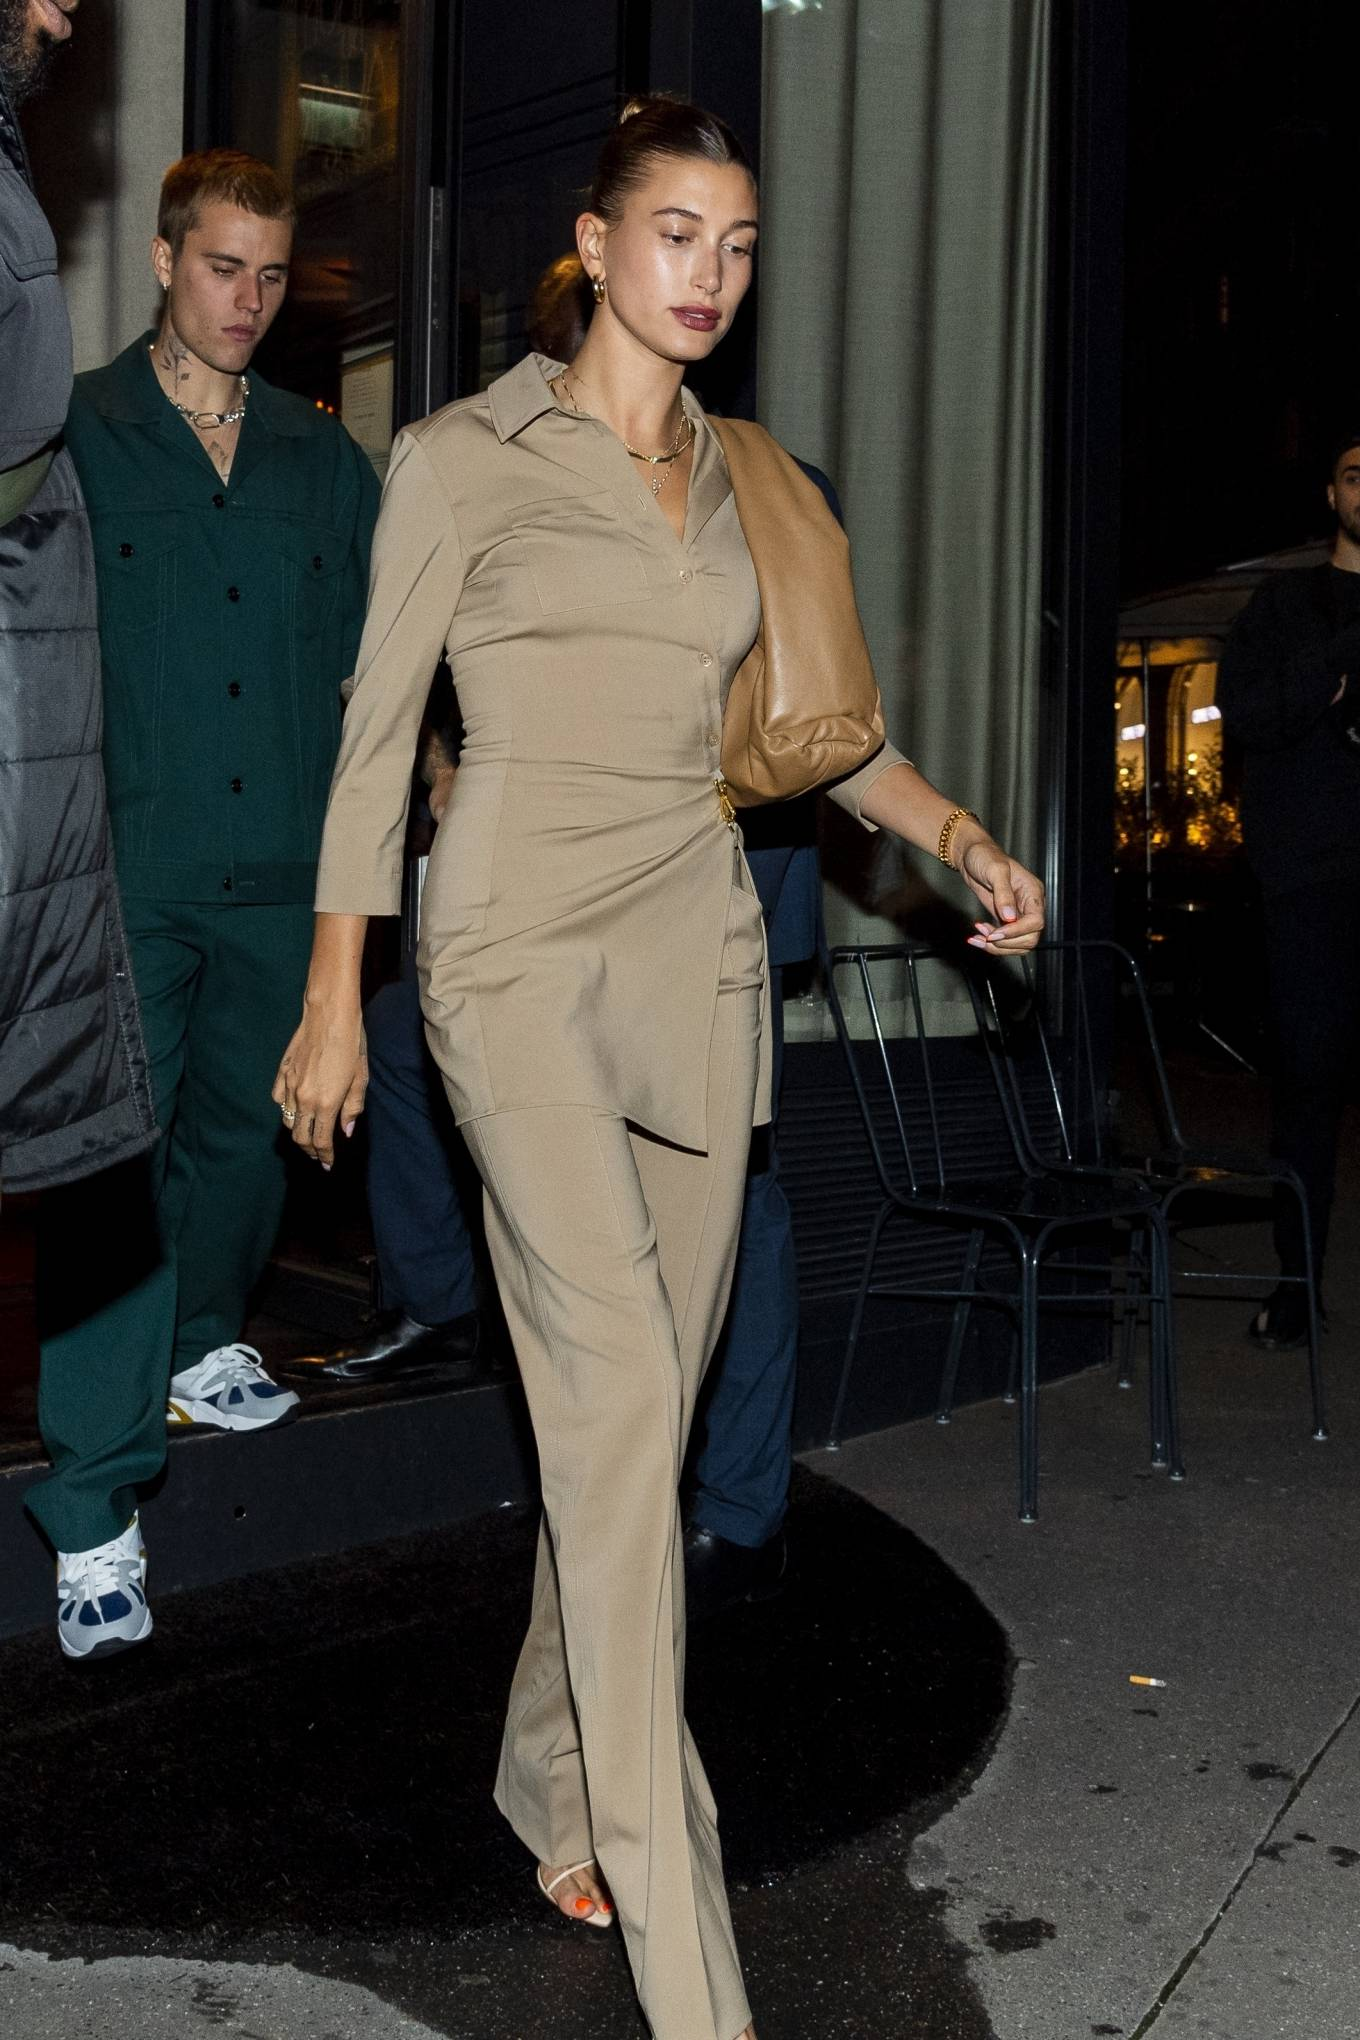 Hailey Bieber rocking a close fitting beige shirt with 3/4 sleeves, shirt collar and asymmetric design